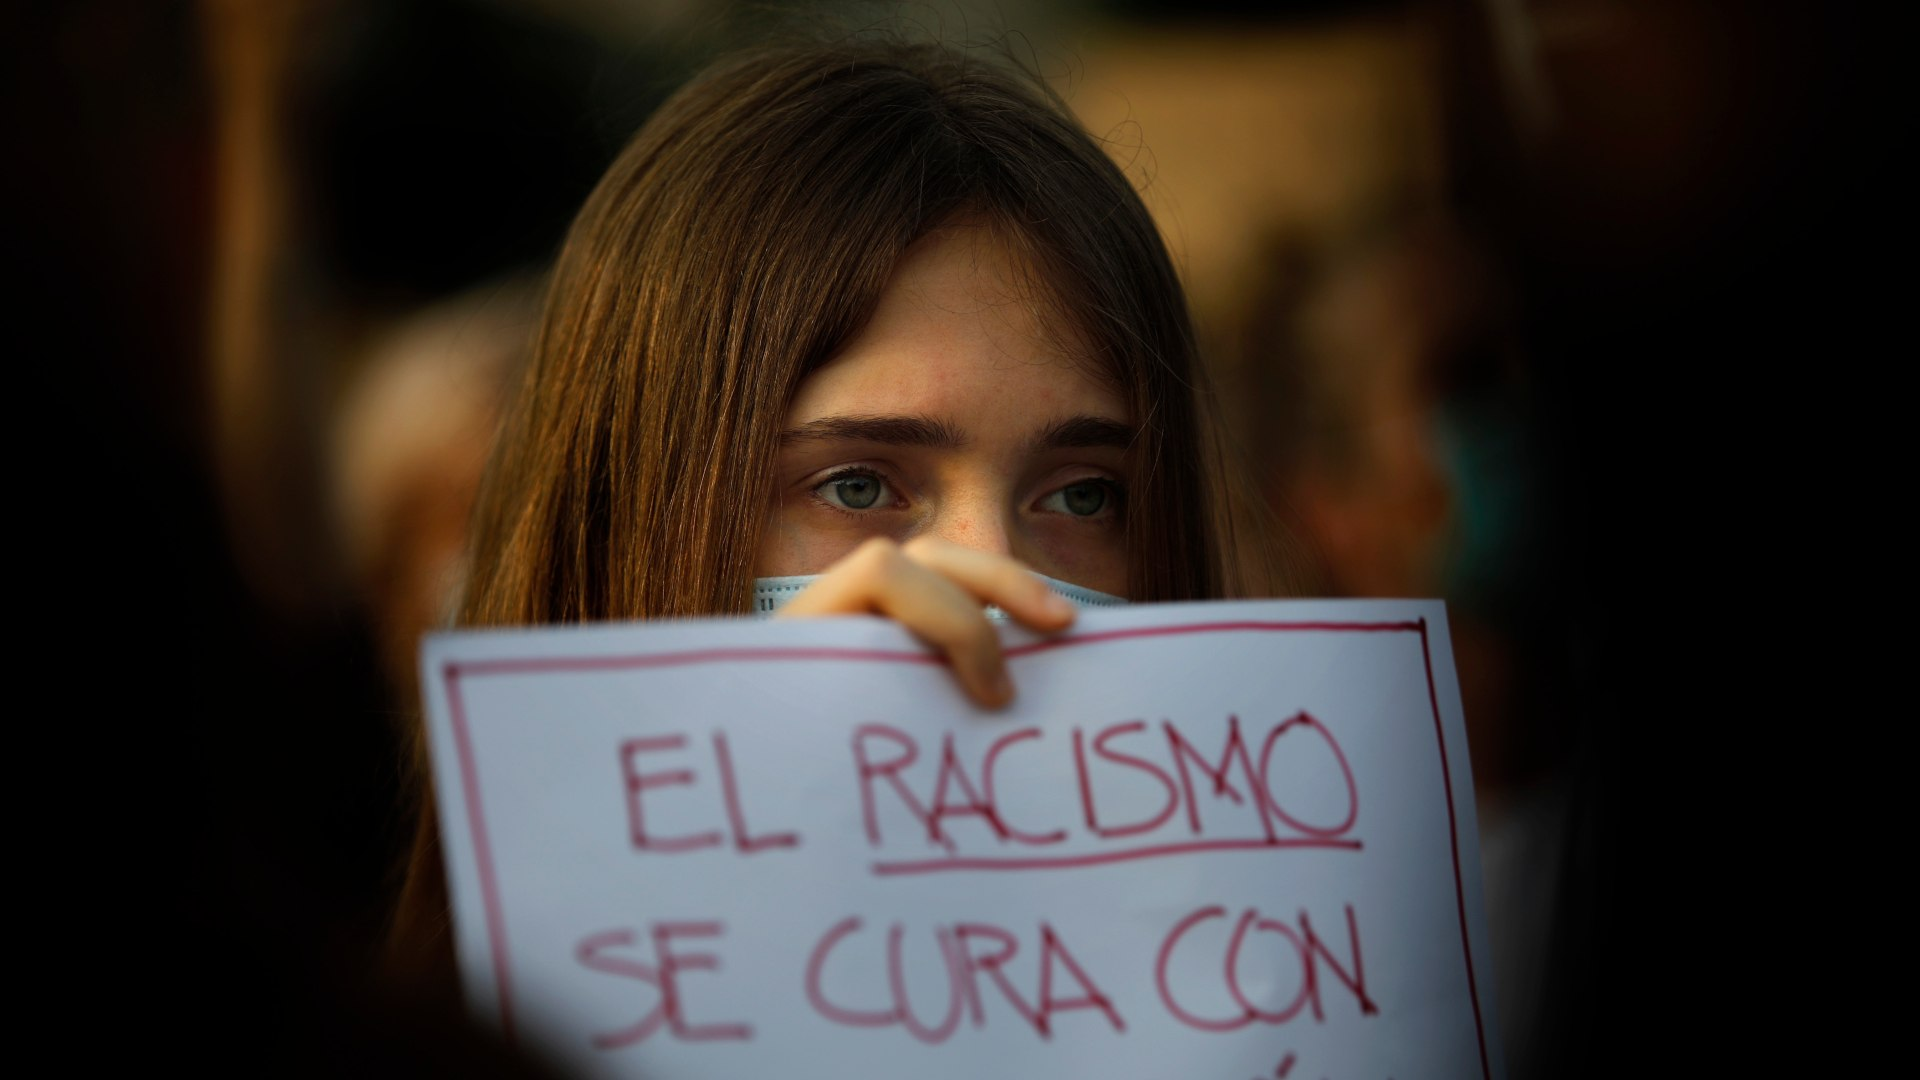 Racismo 'made in Spain'